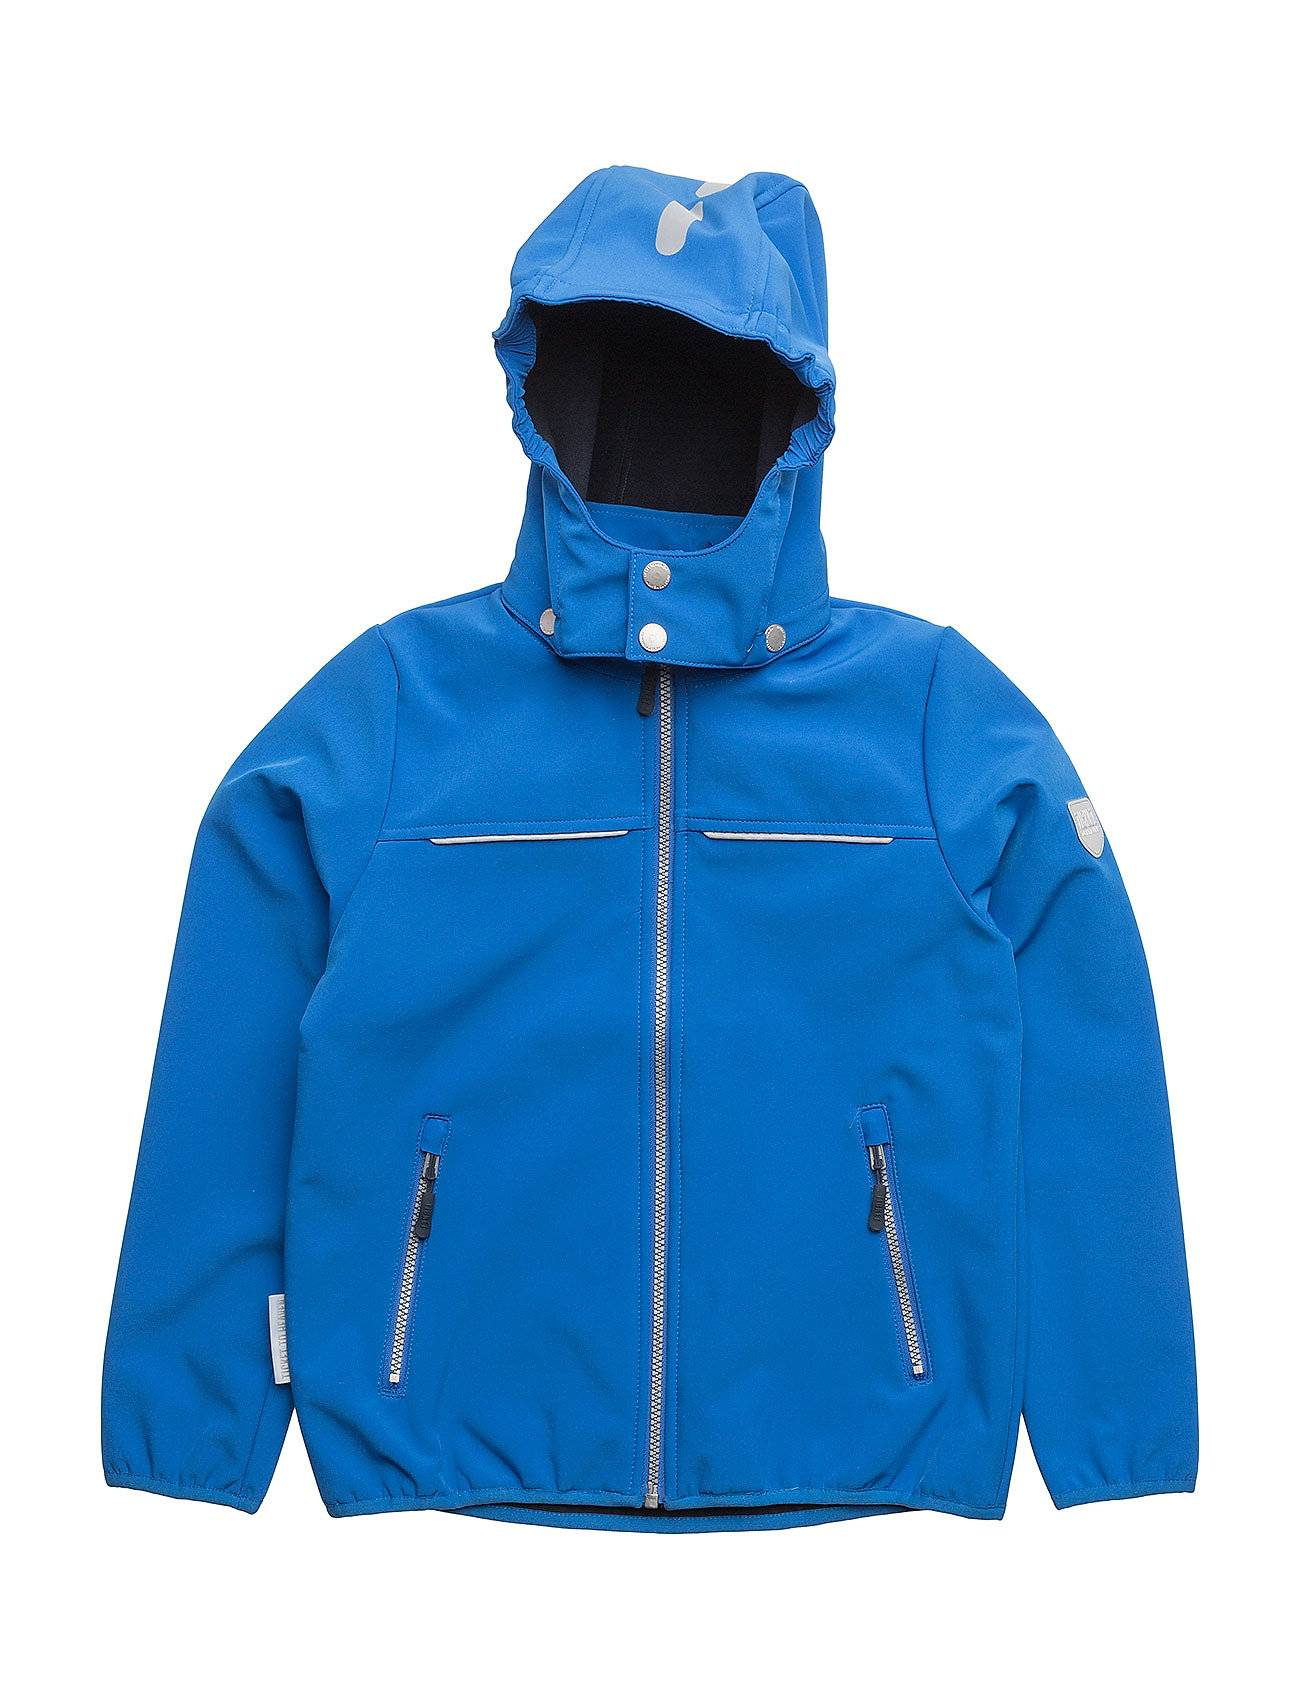 Ticket to Heaven Jacket Softshell Alex 1/1 Sleeves With Detachable Hood